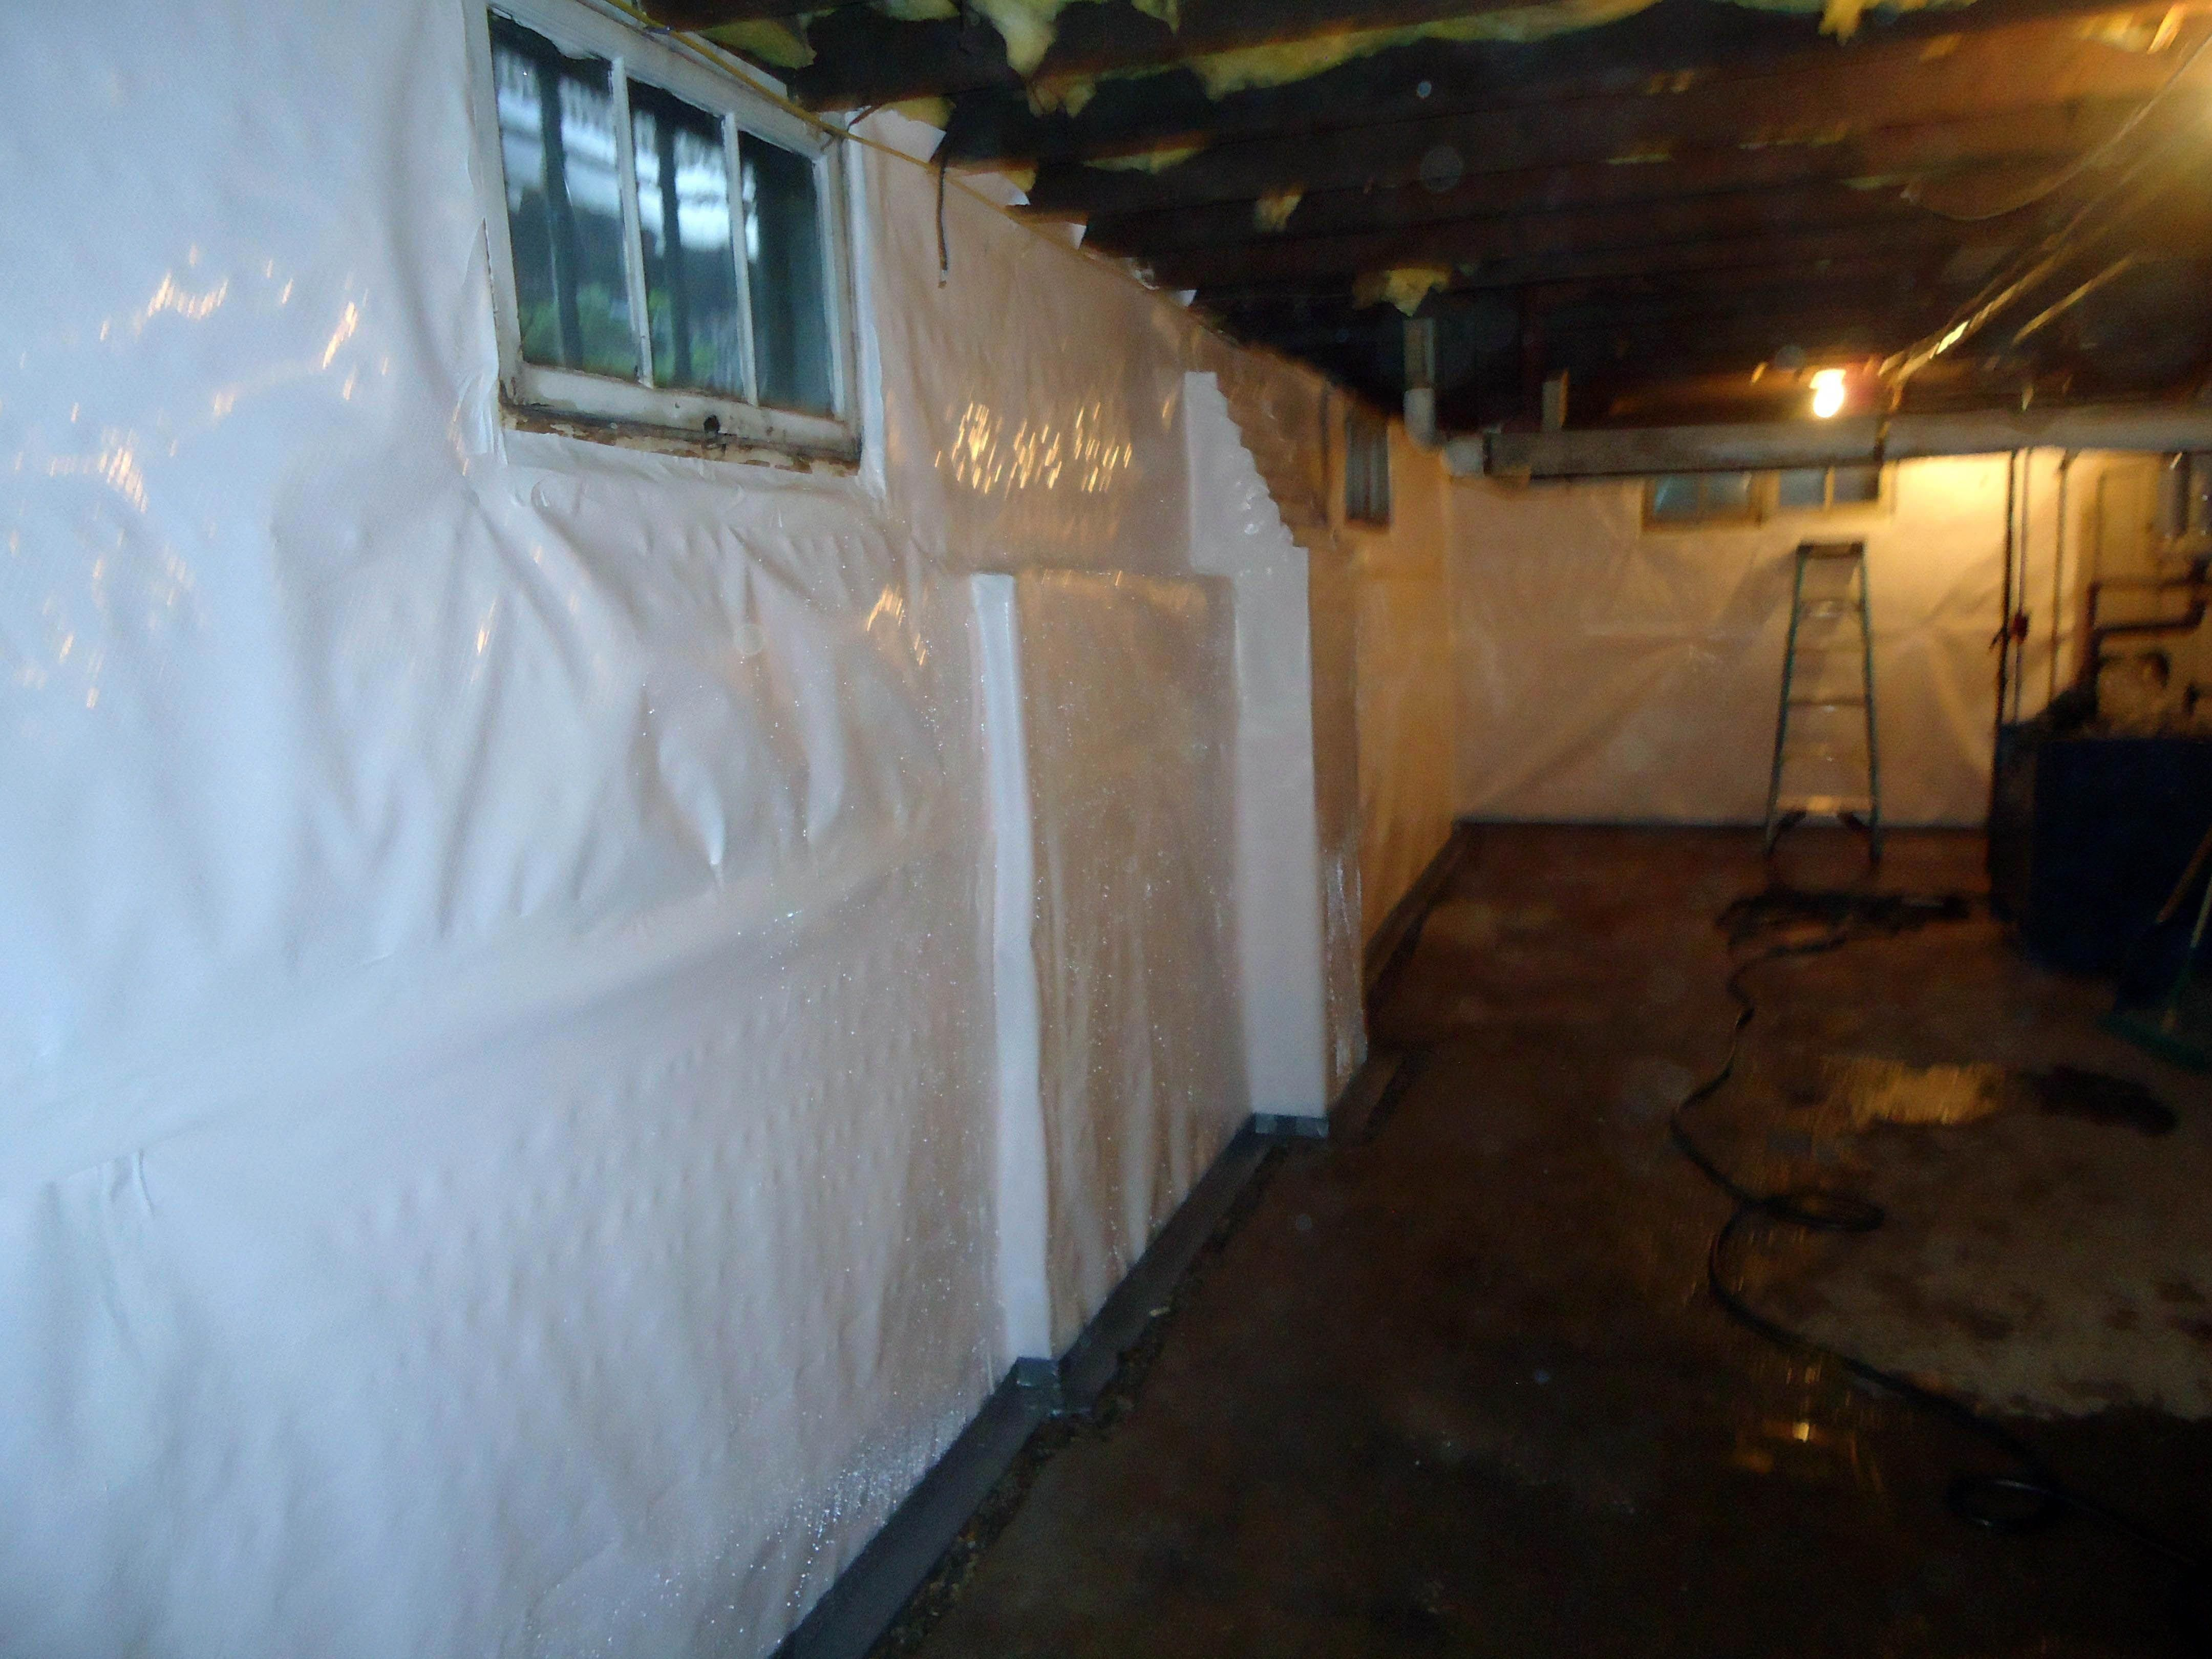 Finest Basement Waterproofing Epoxy To Refresh Your Home Basementwaterproofing Waterproofing Basement Basement Flooring Basement Flooring Options